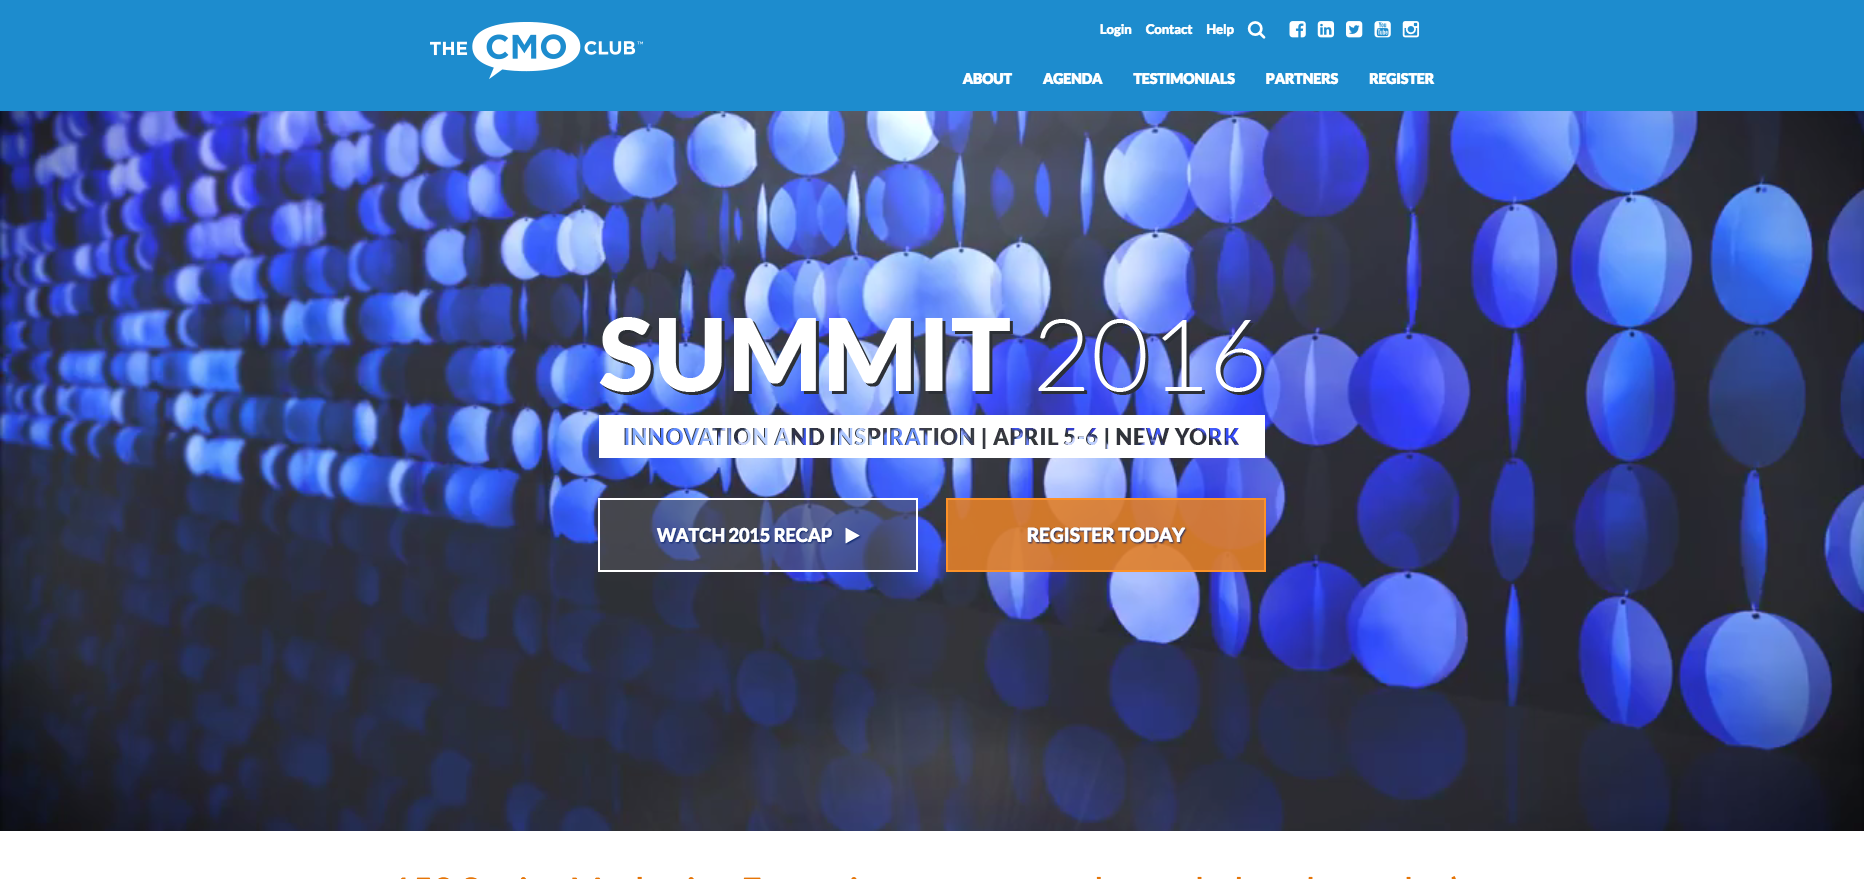 Spring_Summit_2016_The_CMO_Club.png